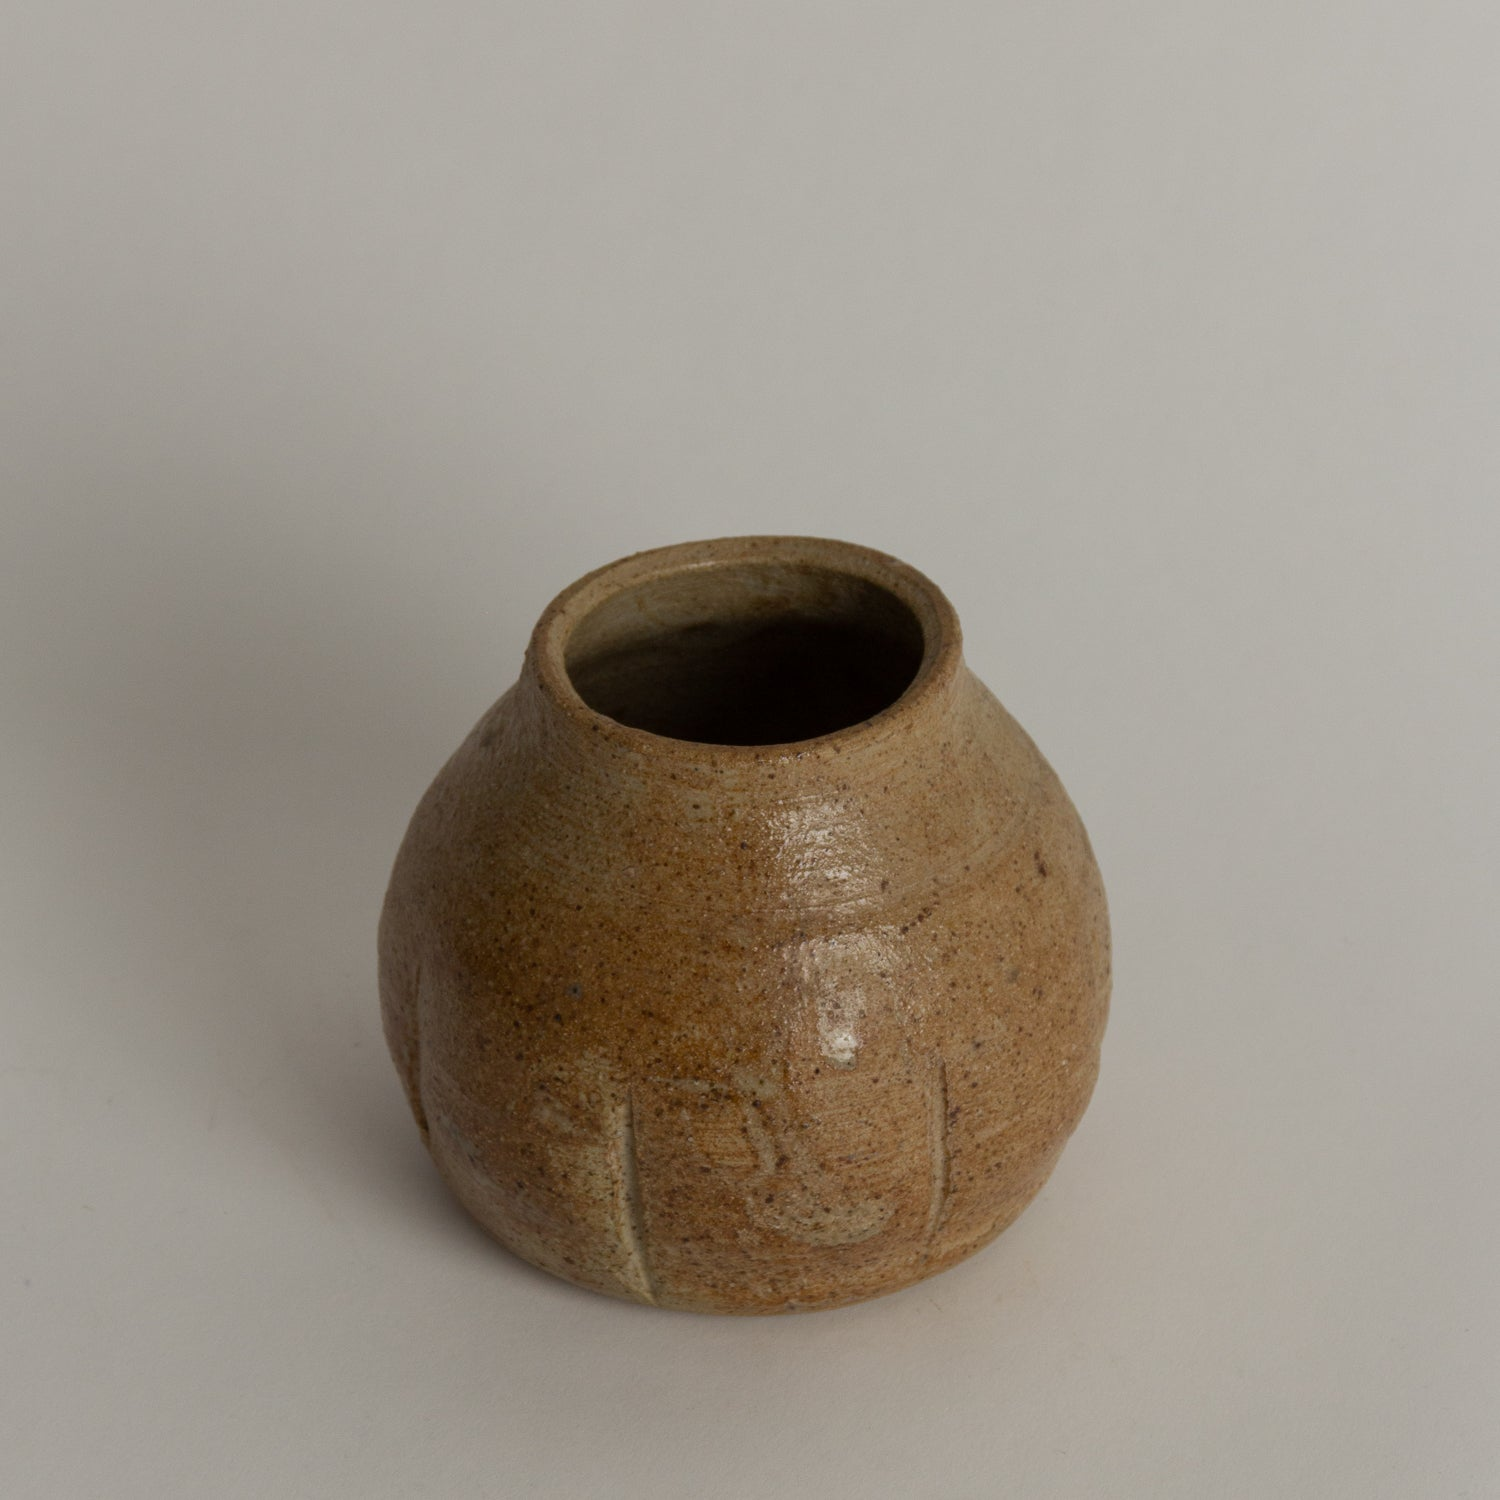 Pebbled Ceramic Vase